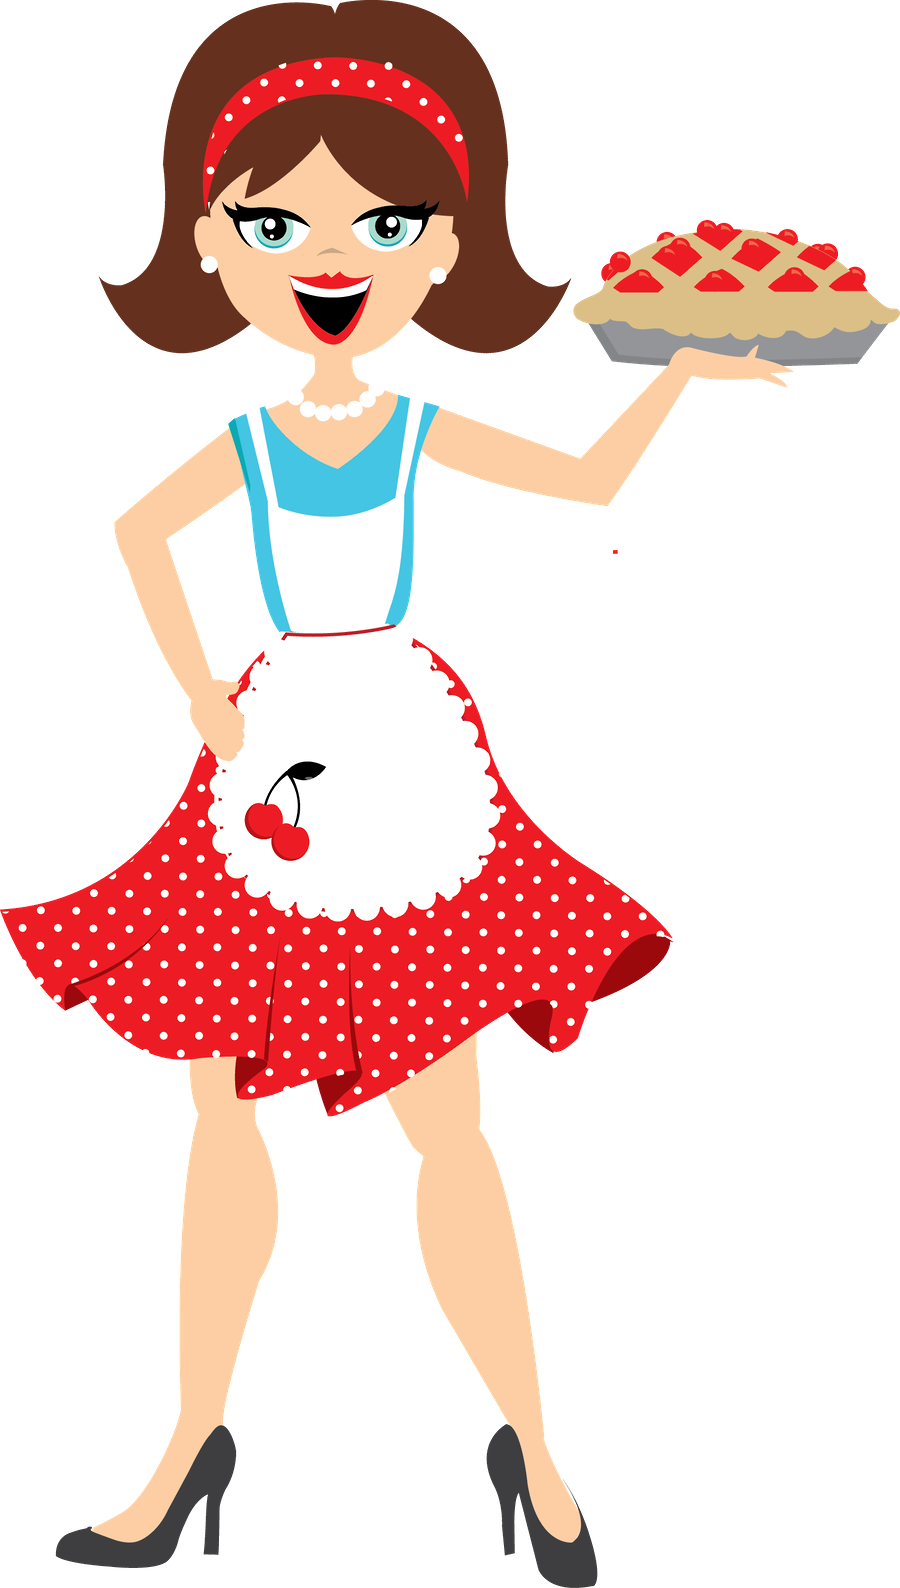 Minus say hello dekopaj. Clipart woman baker